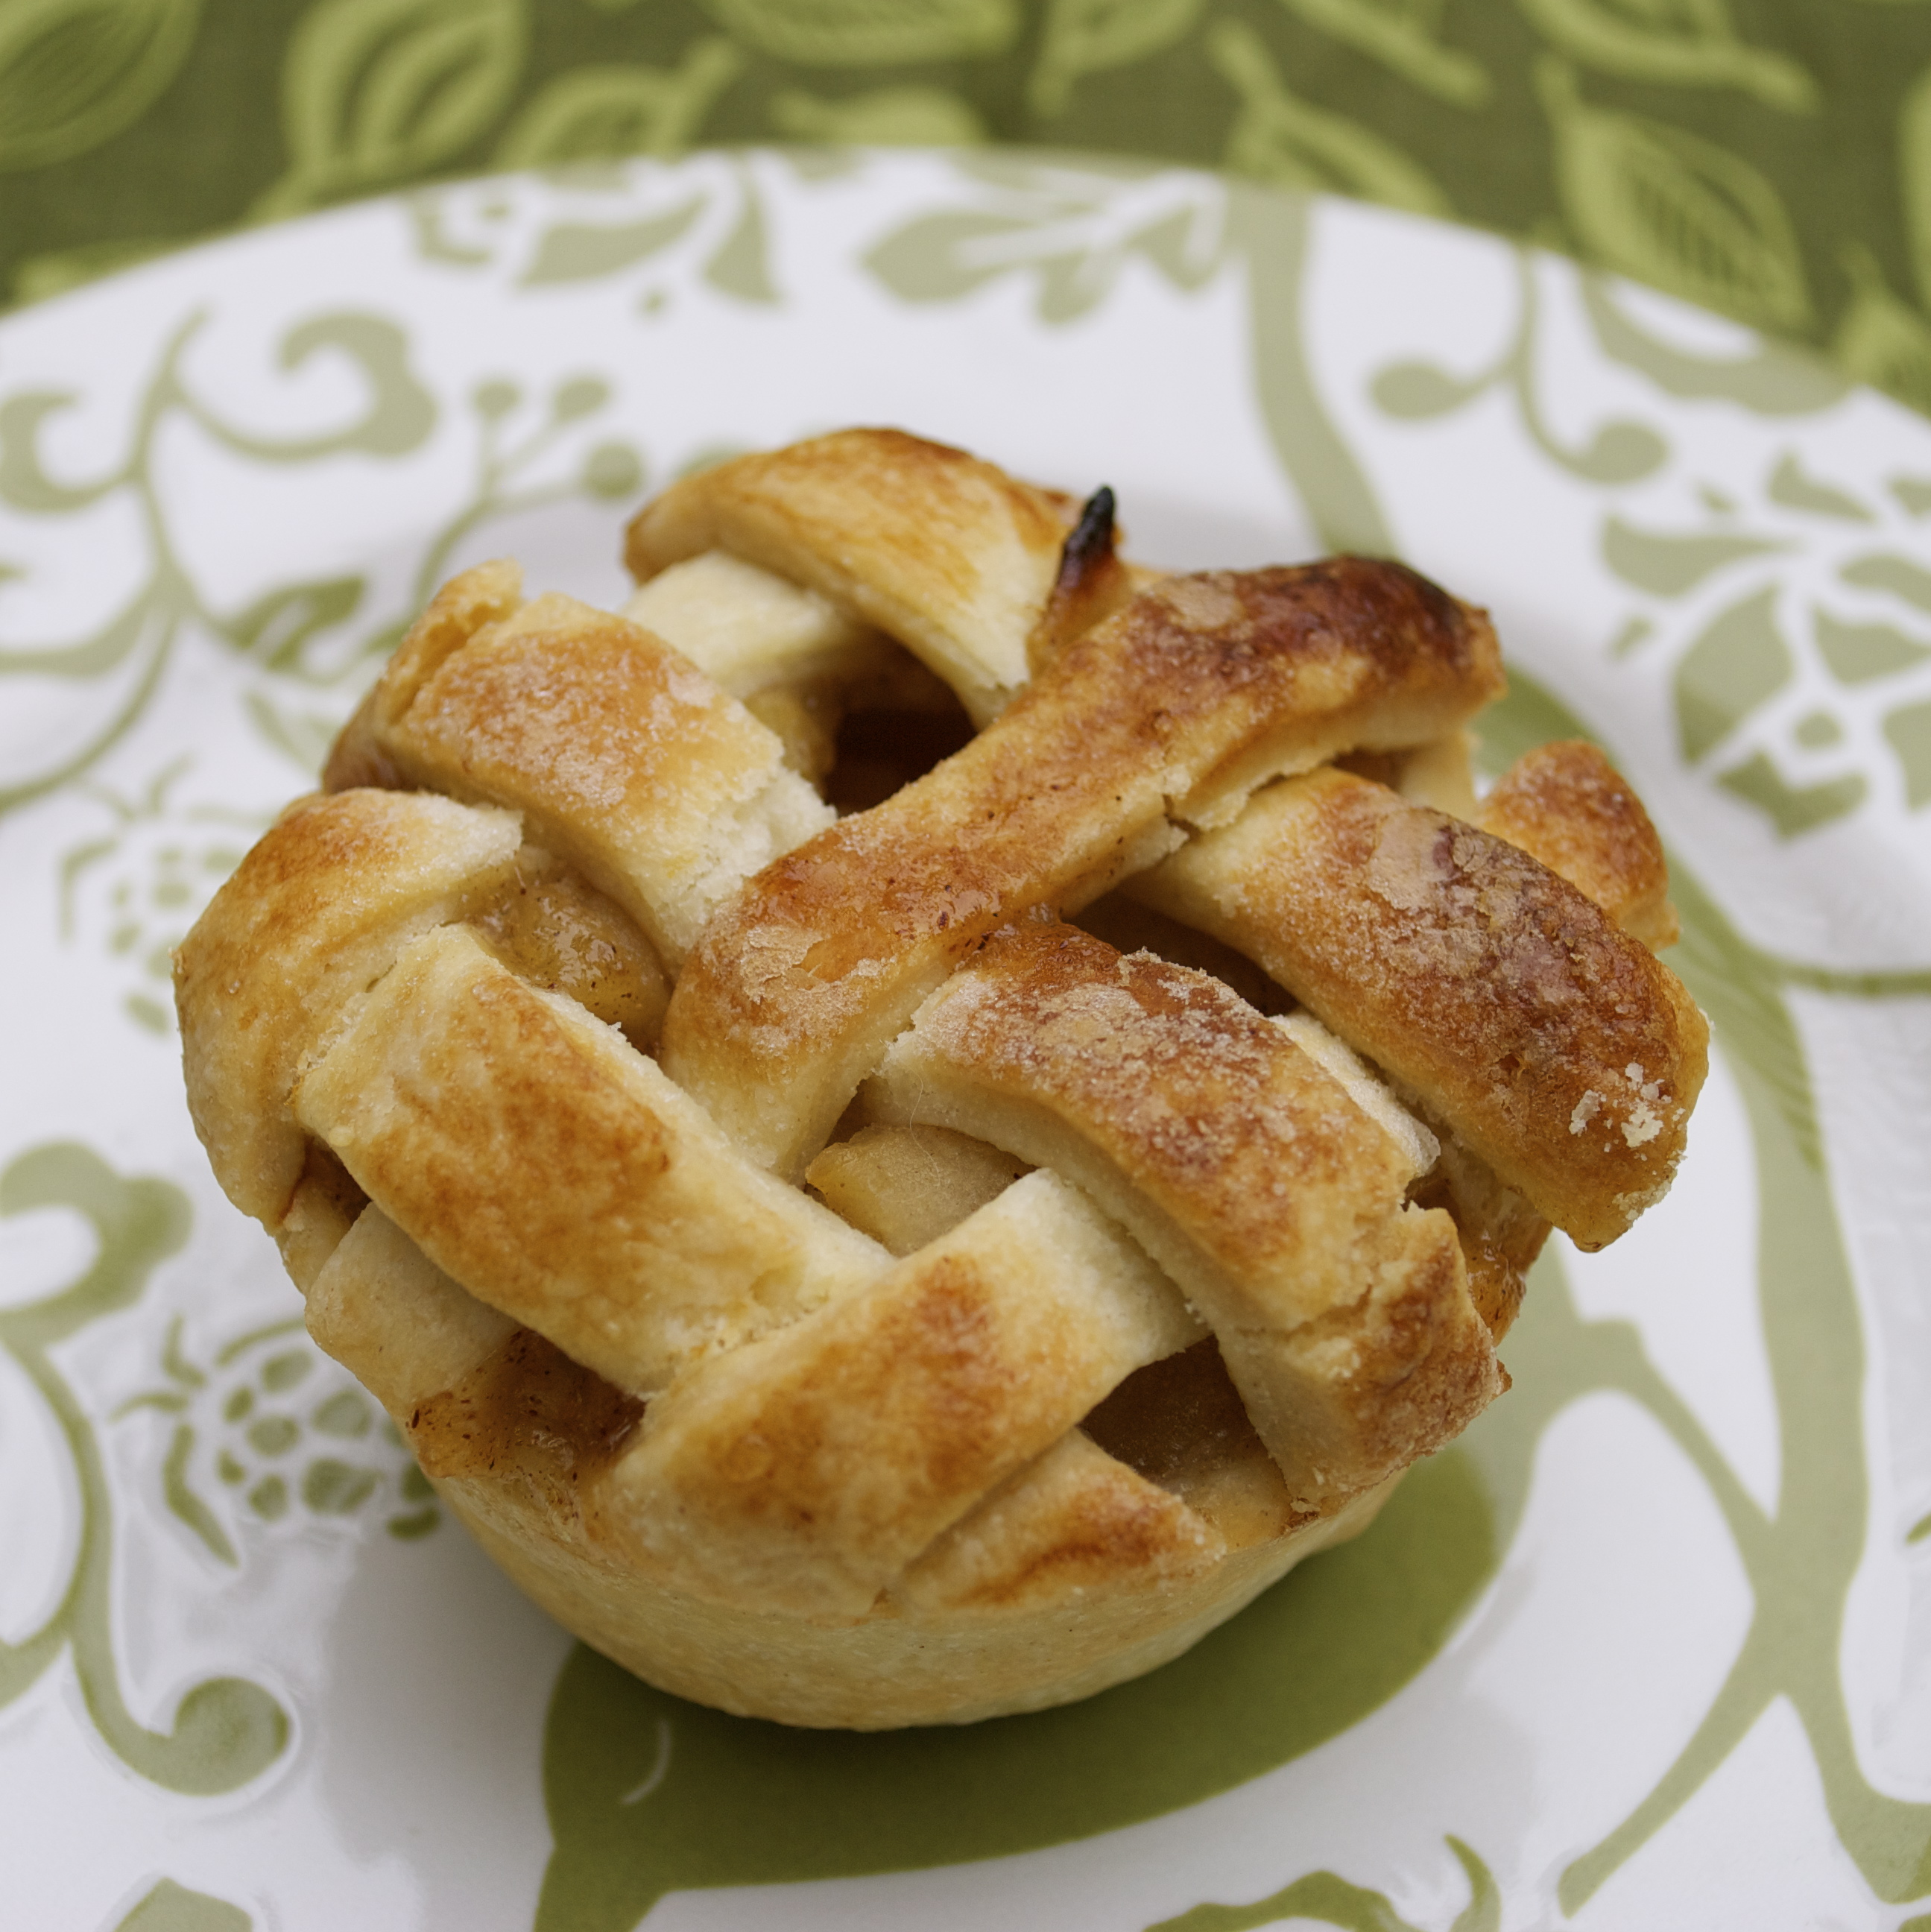 Tips For Make Mini Apple Pies: You will want to use a regular muffin/cupcake pan to make these, NOT a mini cupcake pan. You could use homemade pie crust if desired, but I use pre-made for these.